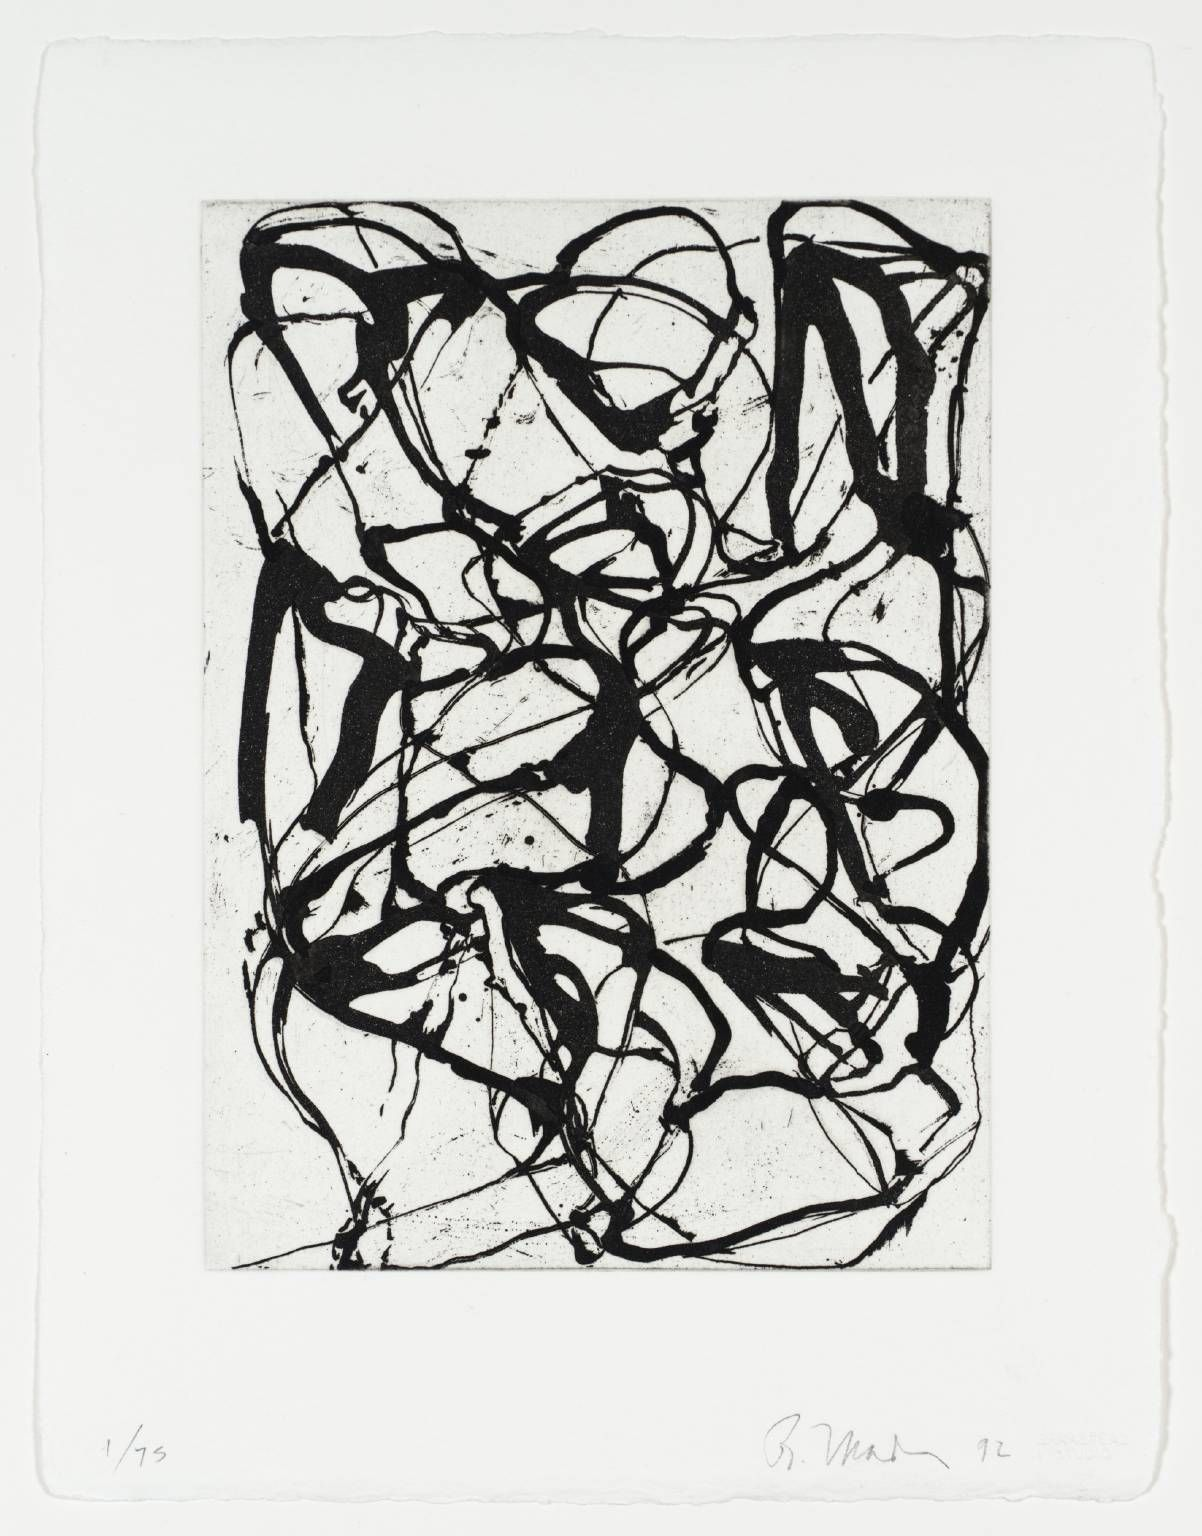 Brice marden looks like picasso black and white paintings